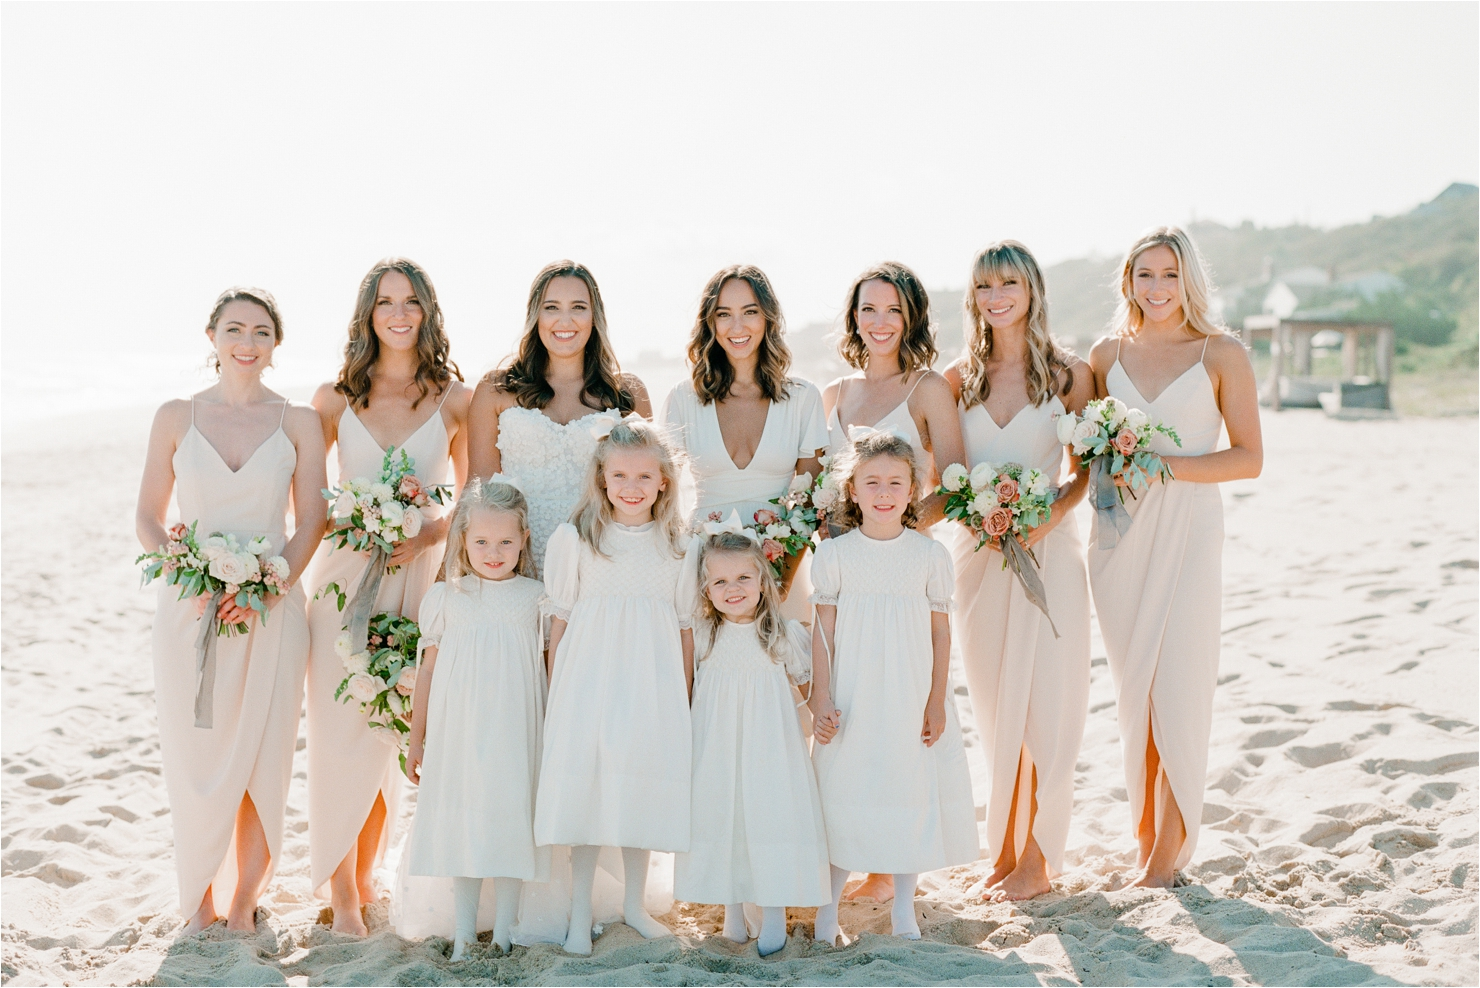 Bride, Bridesmaids and Flower Girls Photos on Beach Montauk